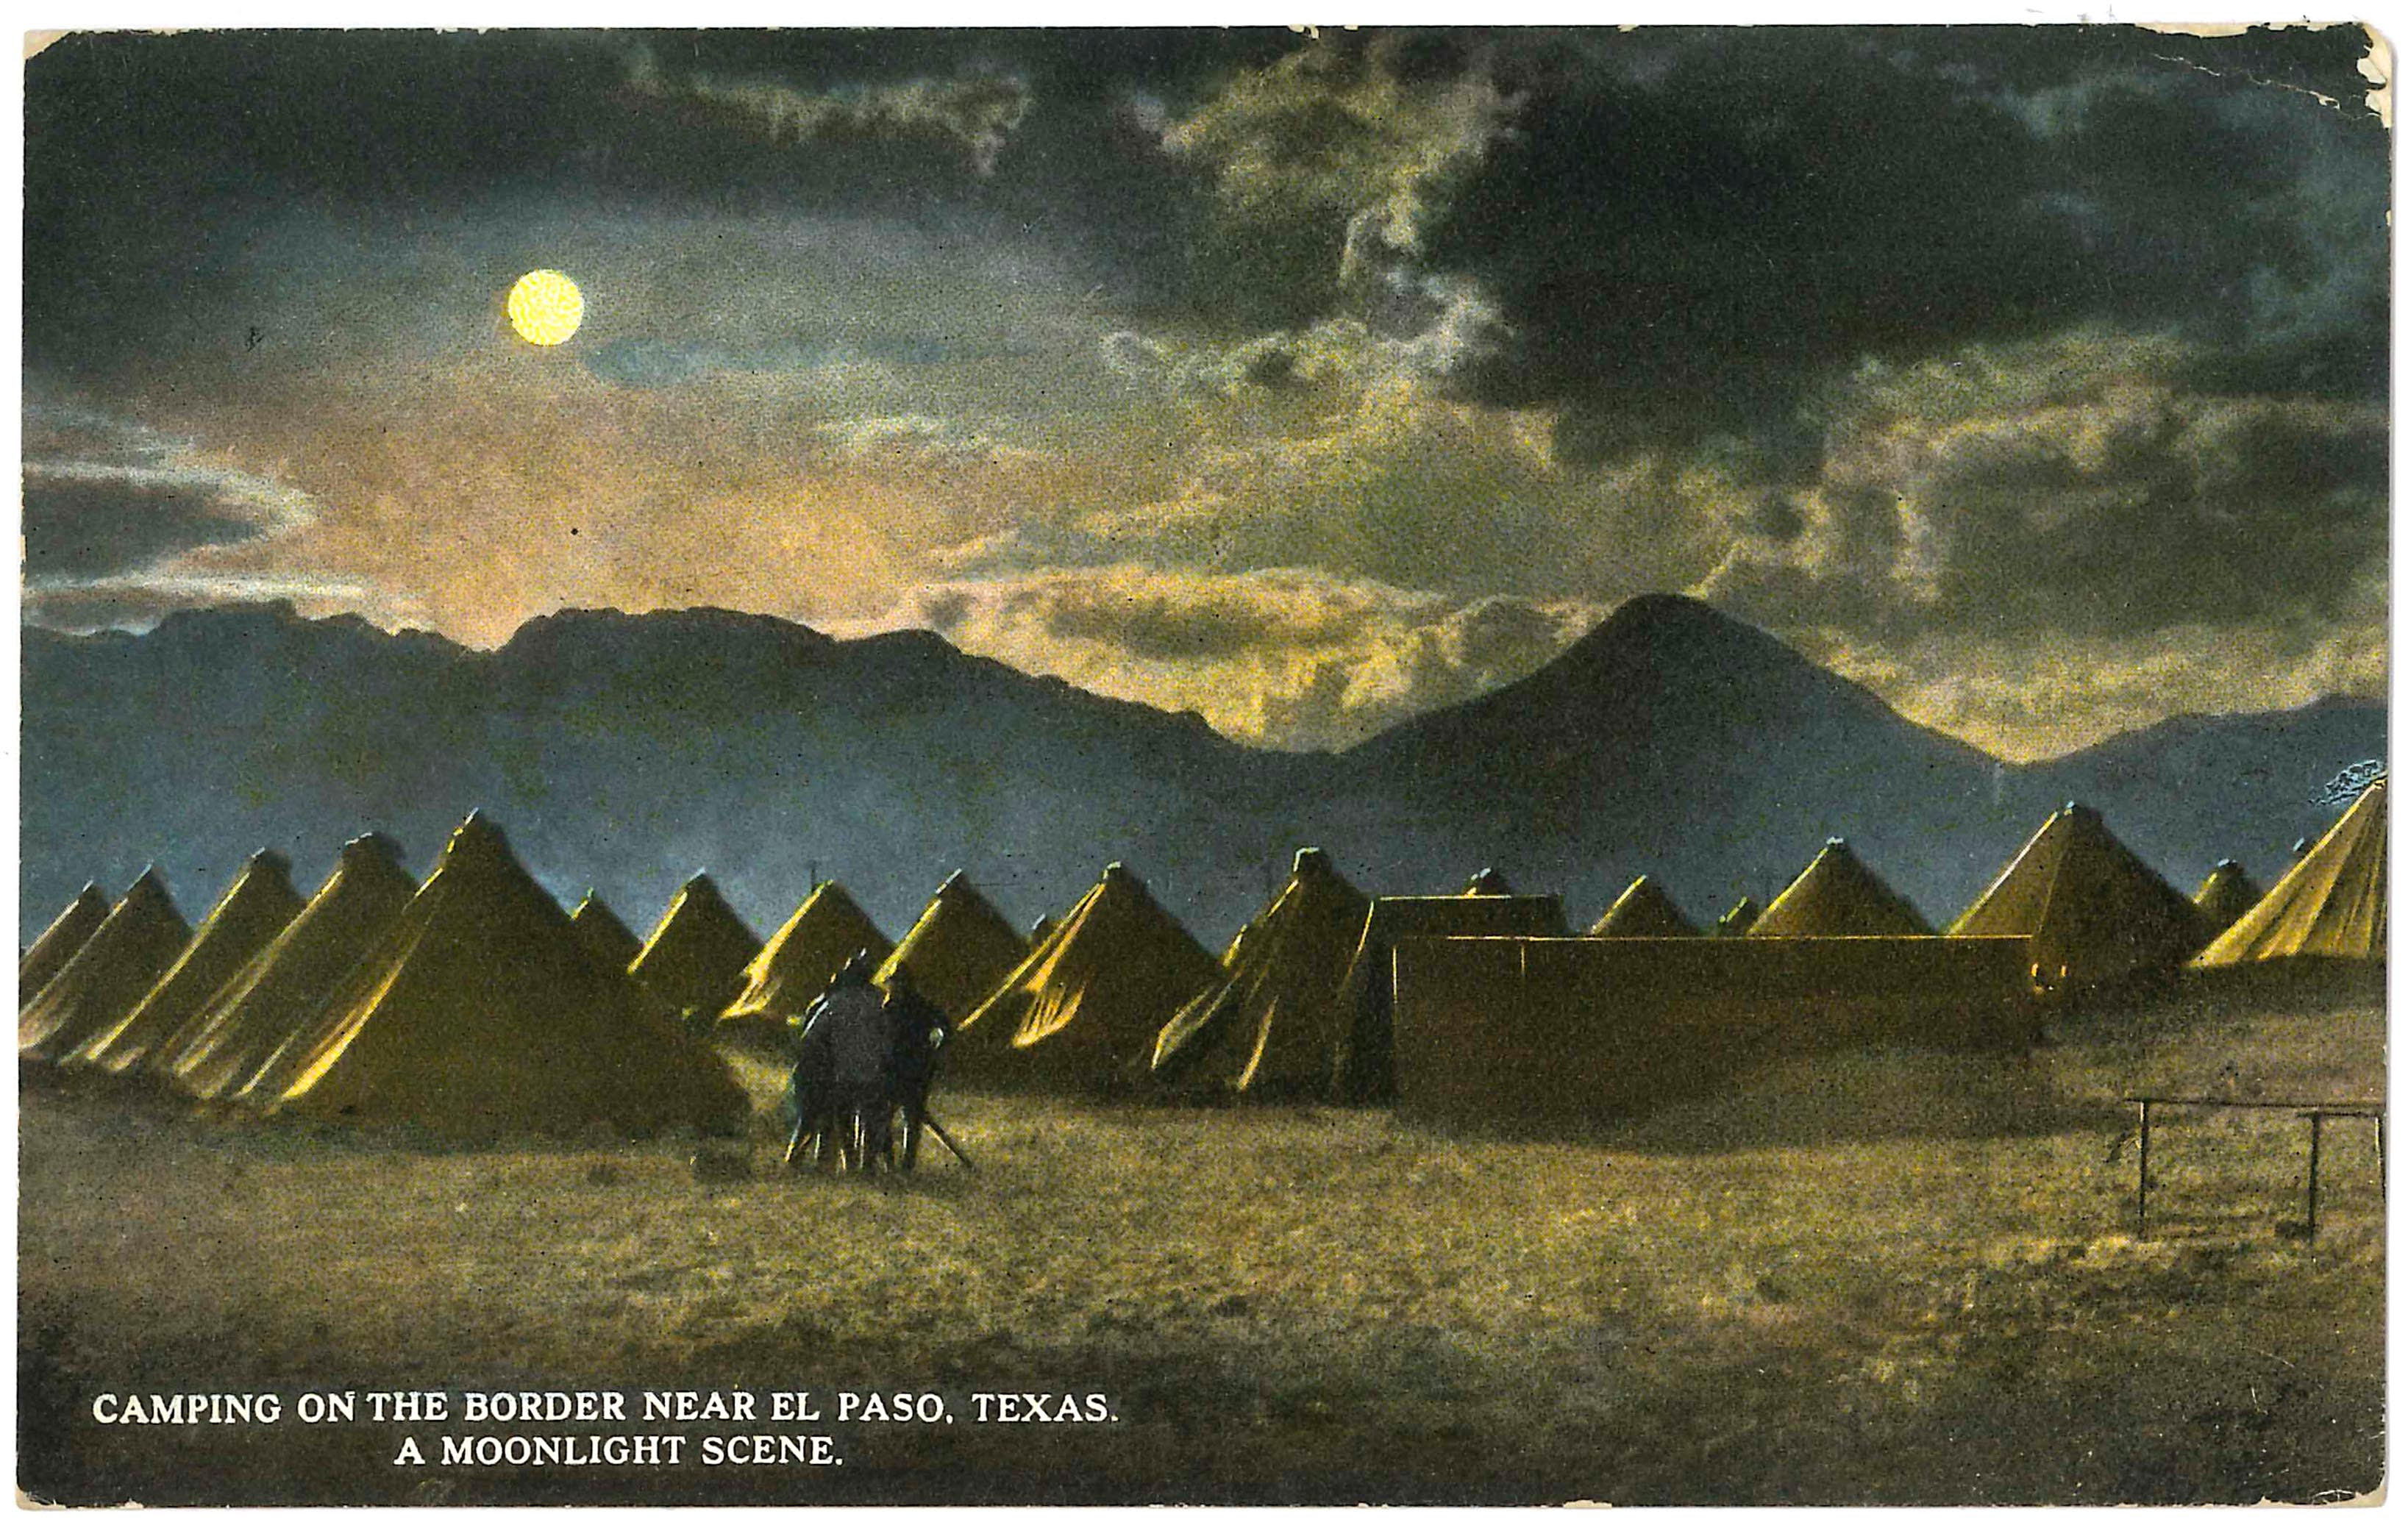 File:Camping on the Border, near El Paso, Texas.jpg